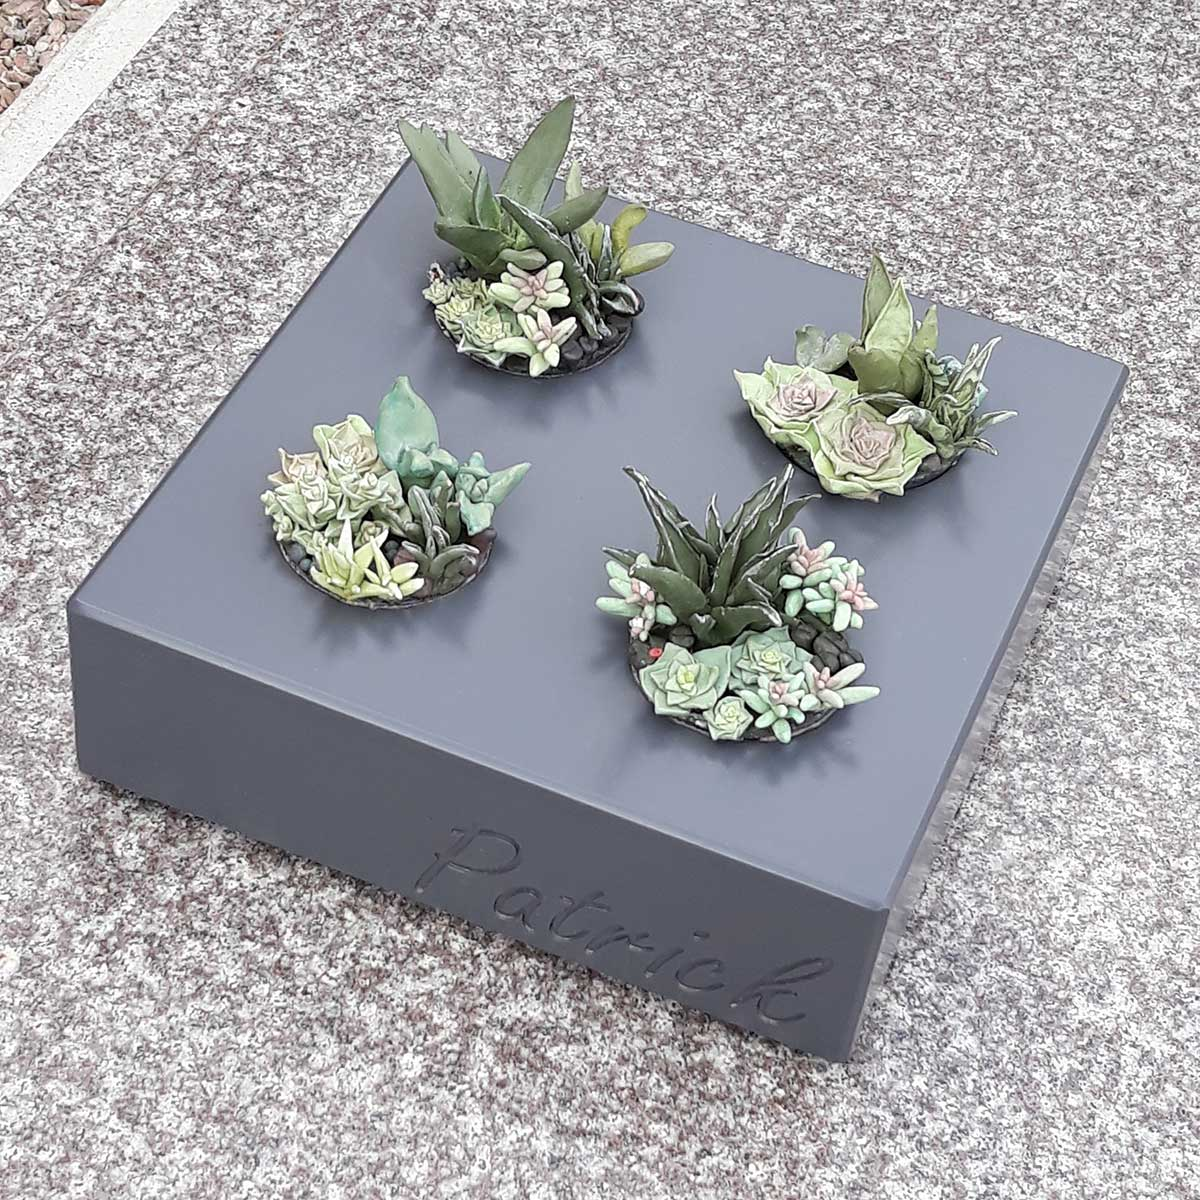 Pot pour tombe IMAGE'IN - Pots durables pour tombe